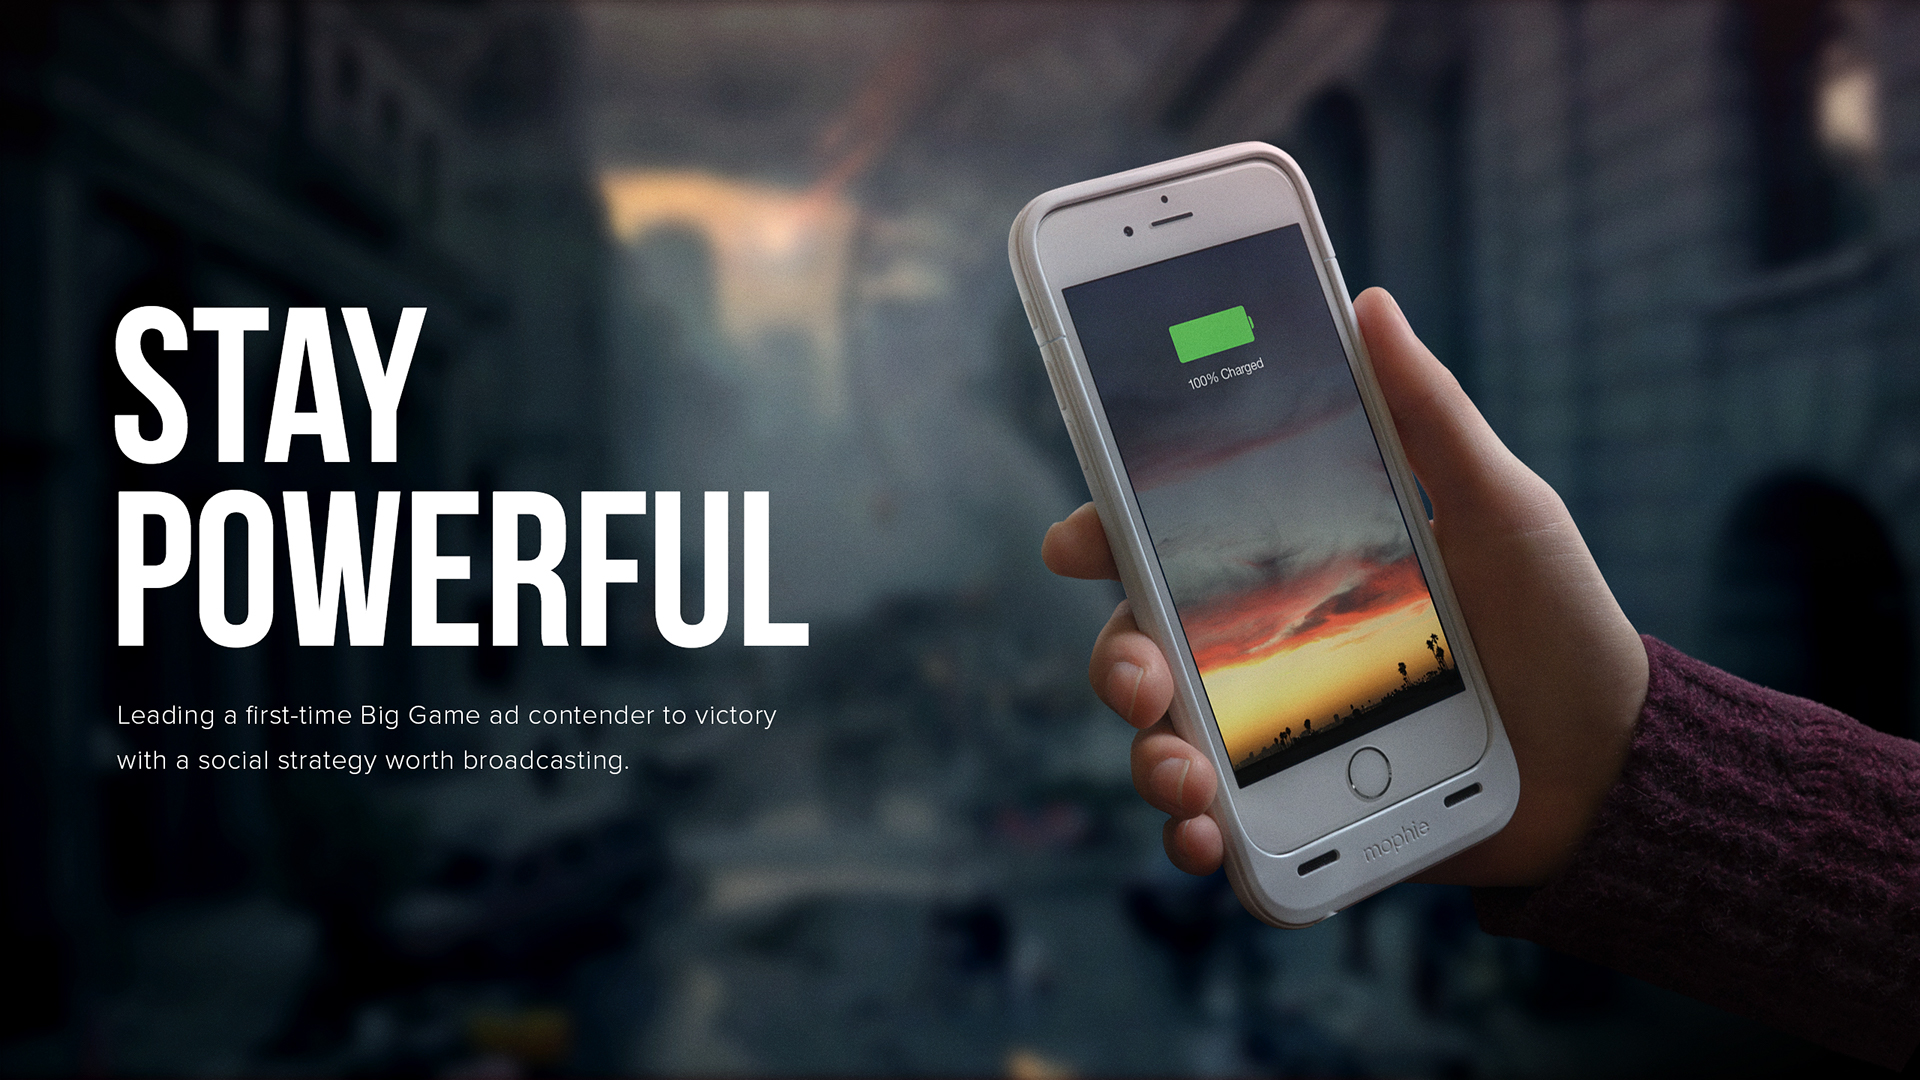 Mophie Stay Powerful On Behance Every day new 3d models from all over the world. mophie stay powerful on behance